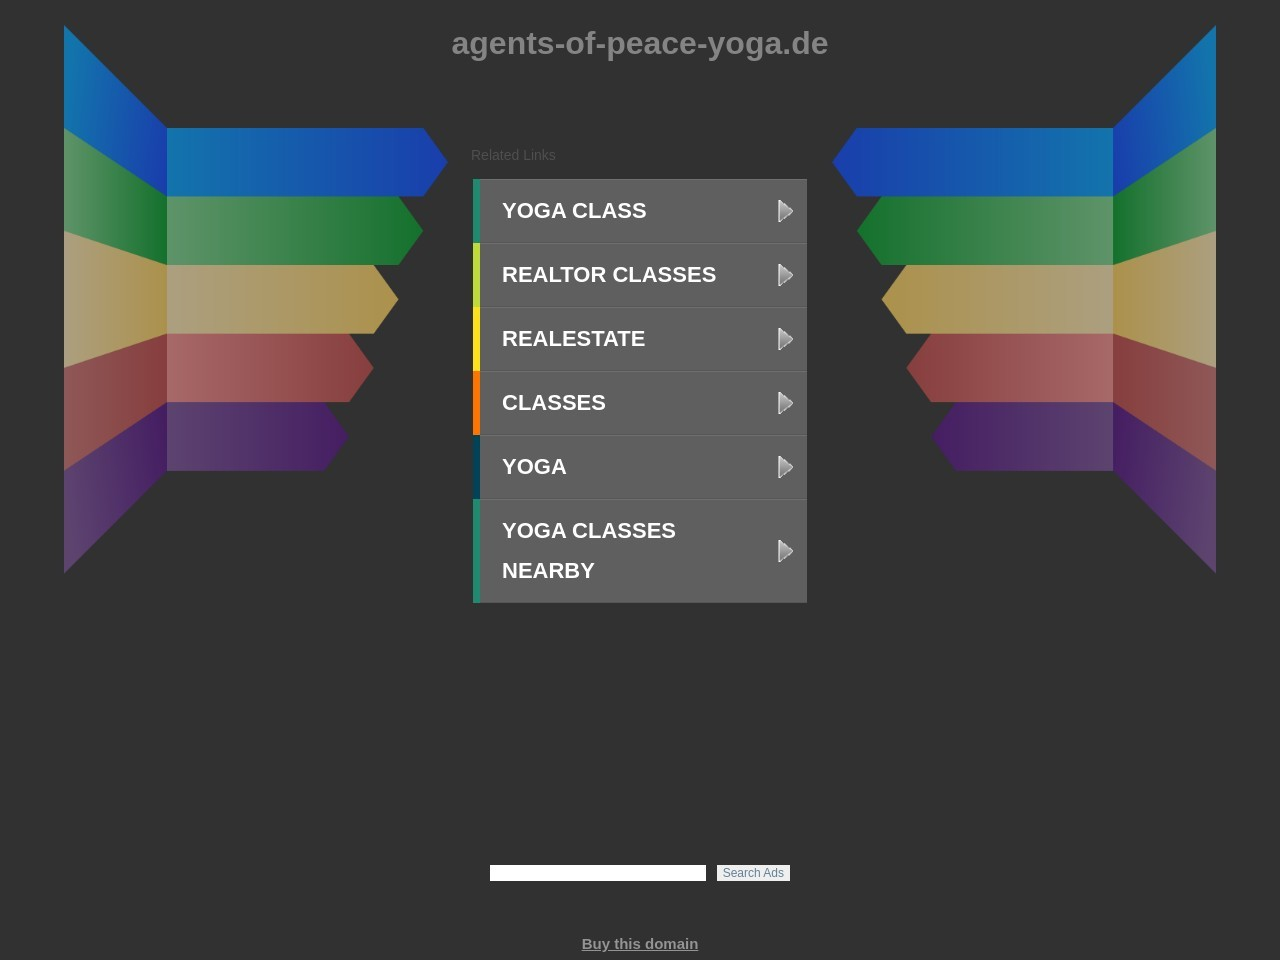 Yogastudio Agents of Peace